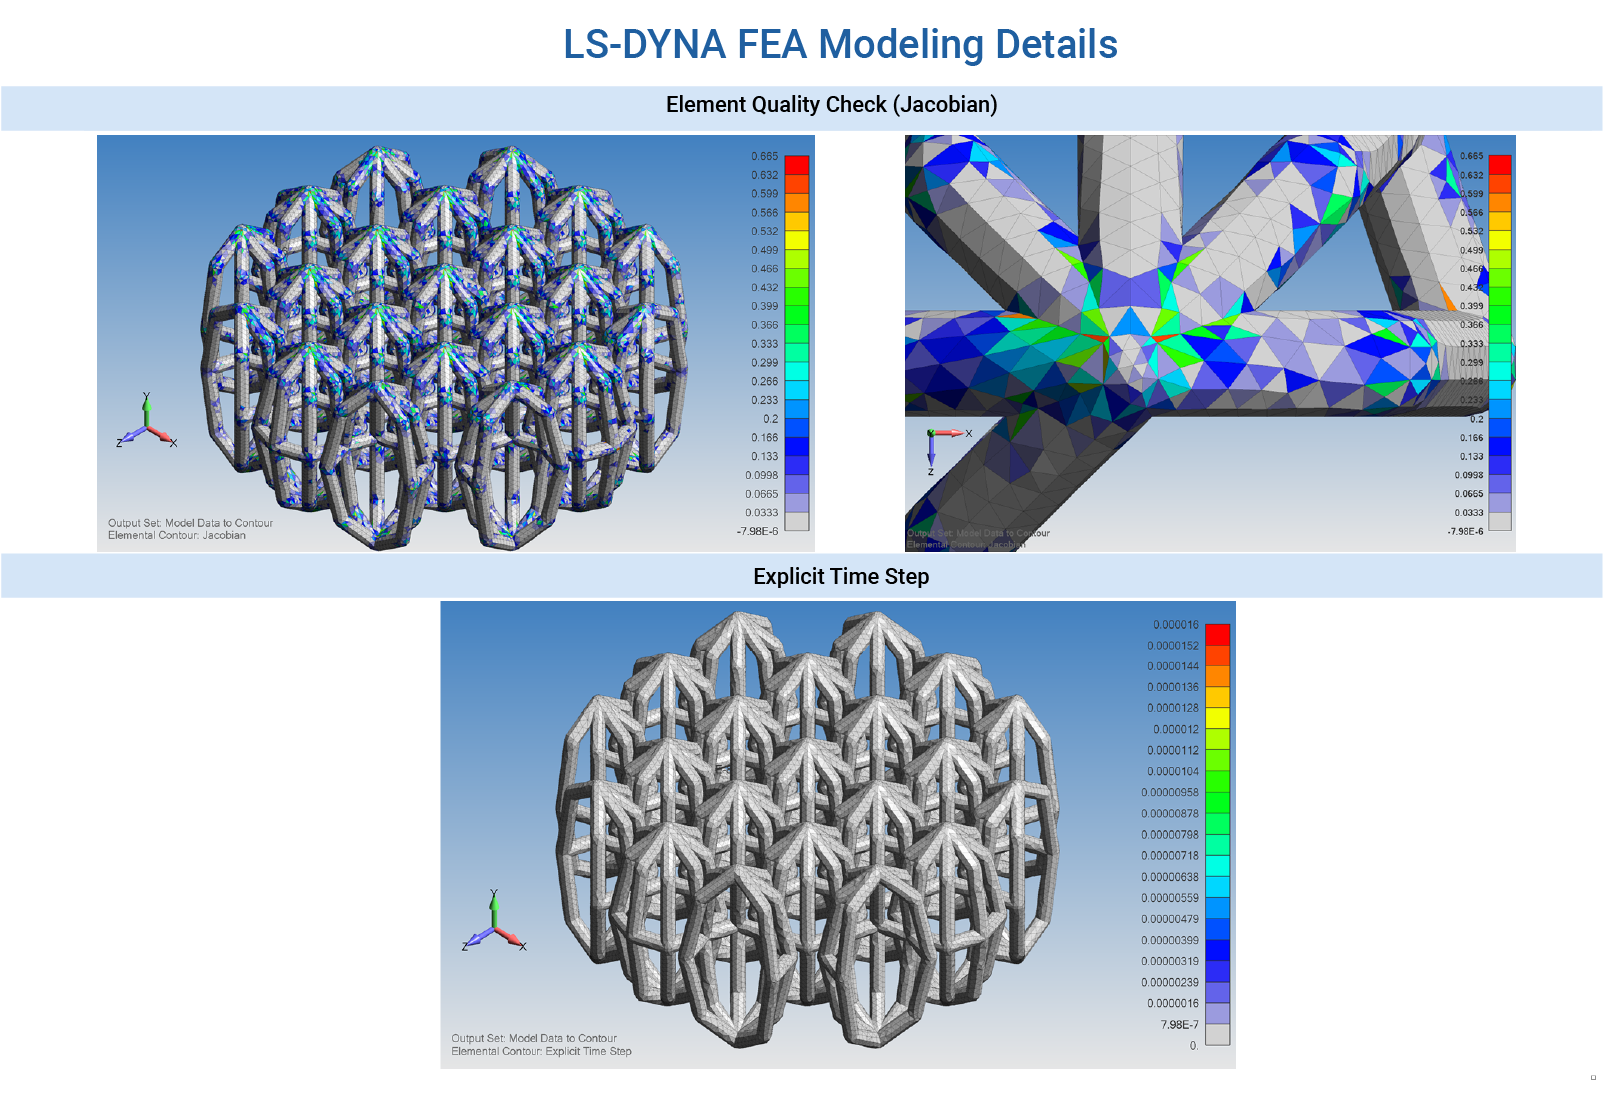 LS-DYNA FEA Modeling Details - All Models Built using FEMAP from Siemens PLM Software - Courtesy of Applied CAx